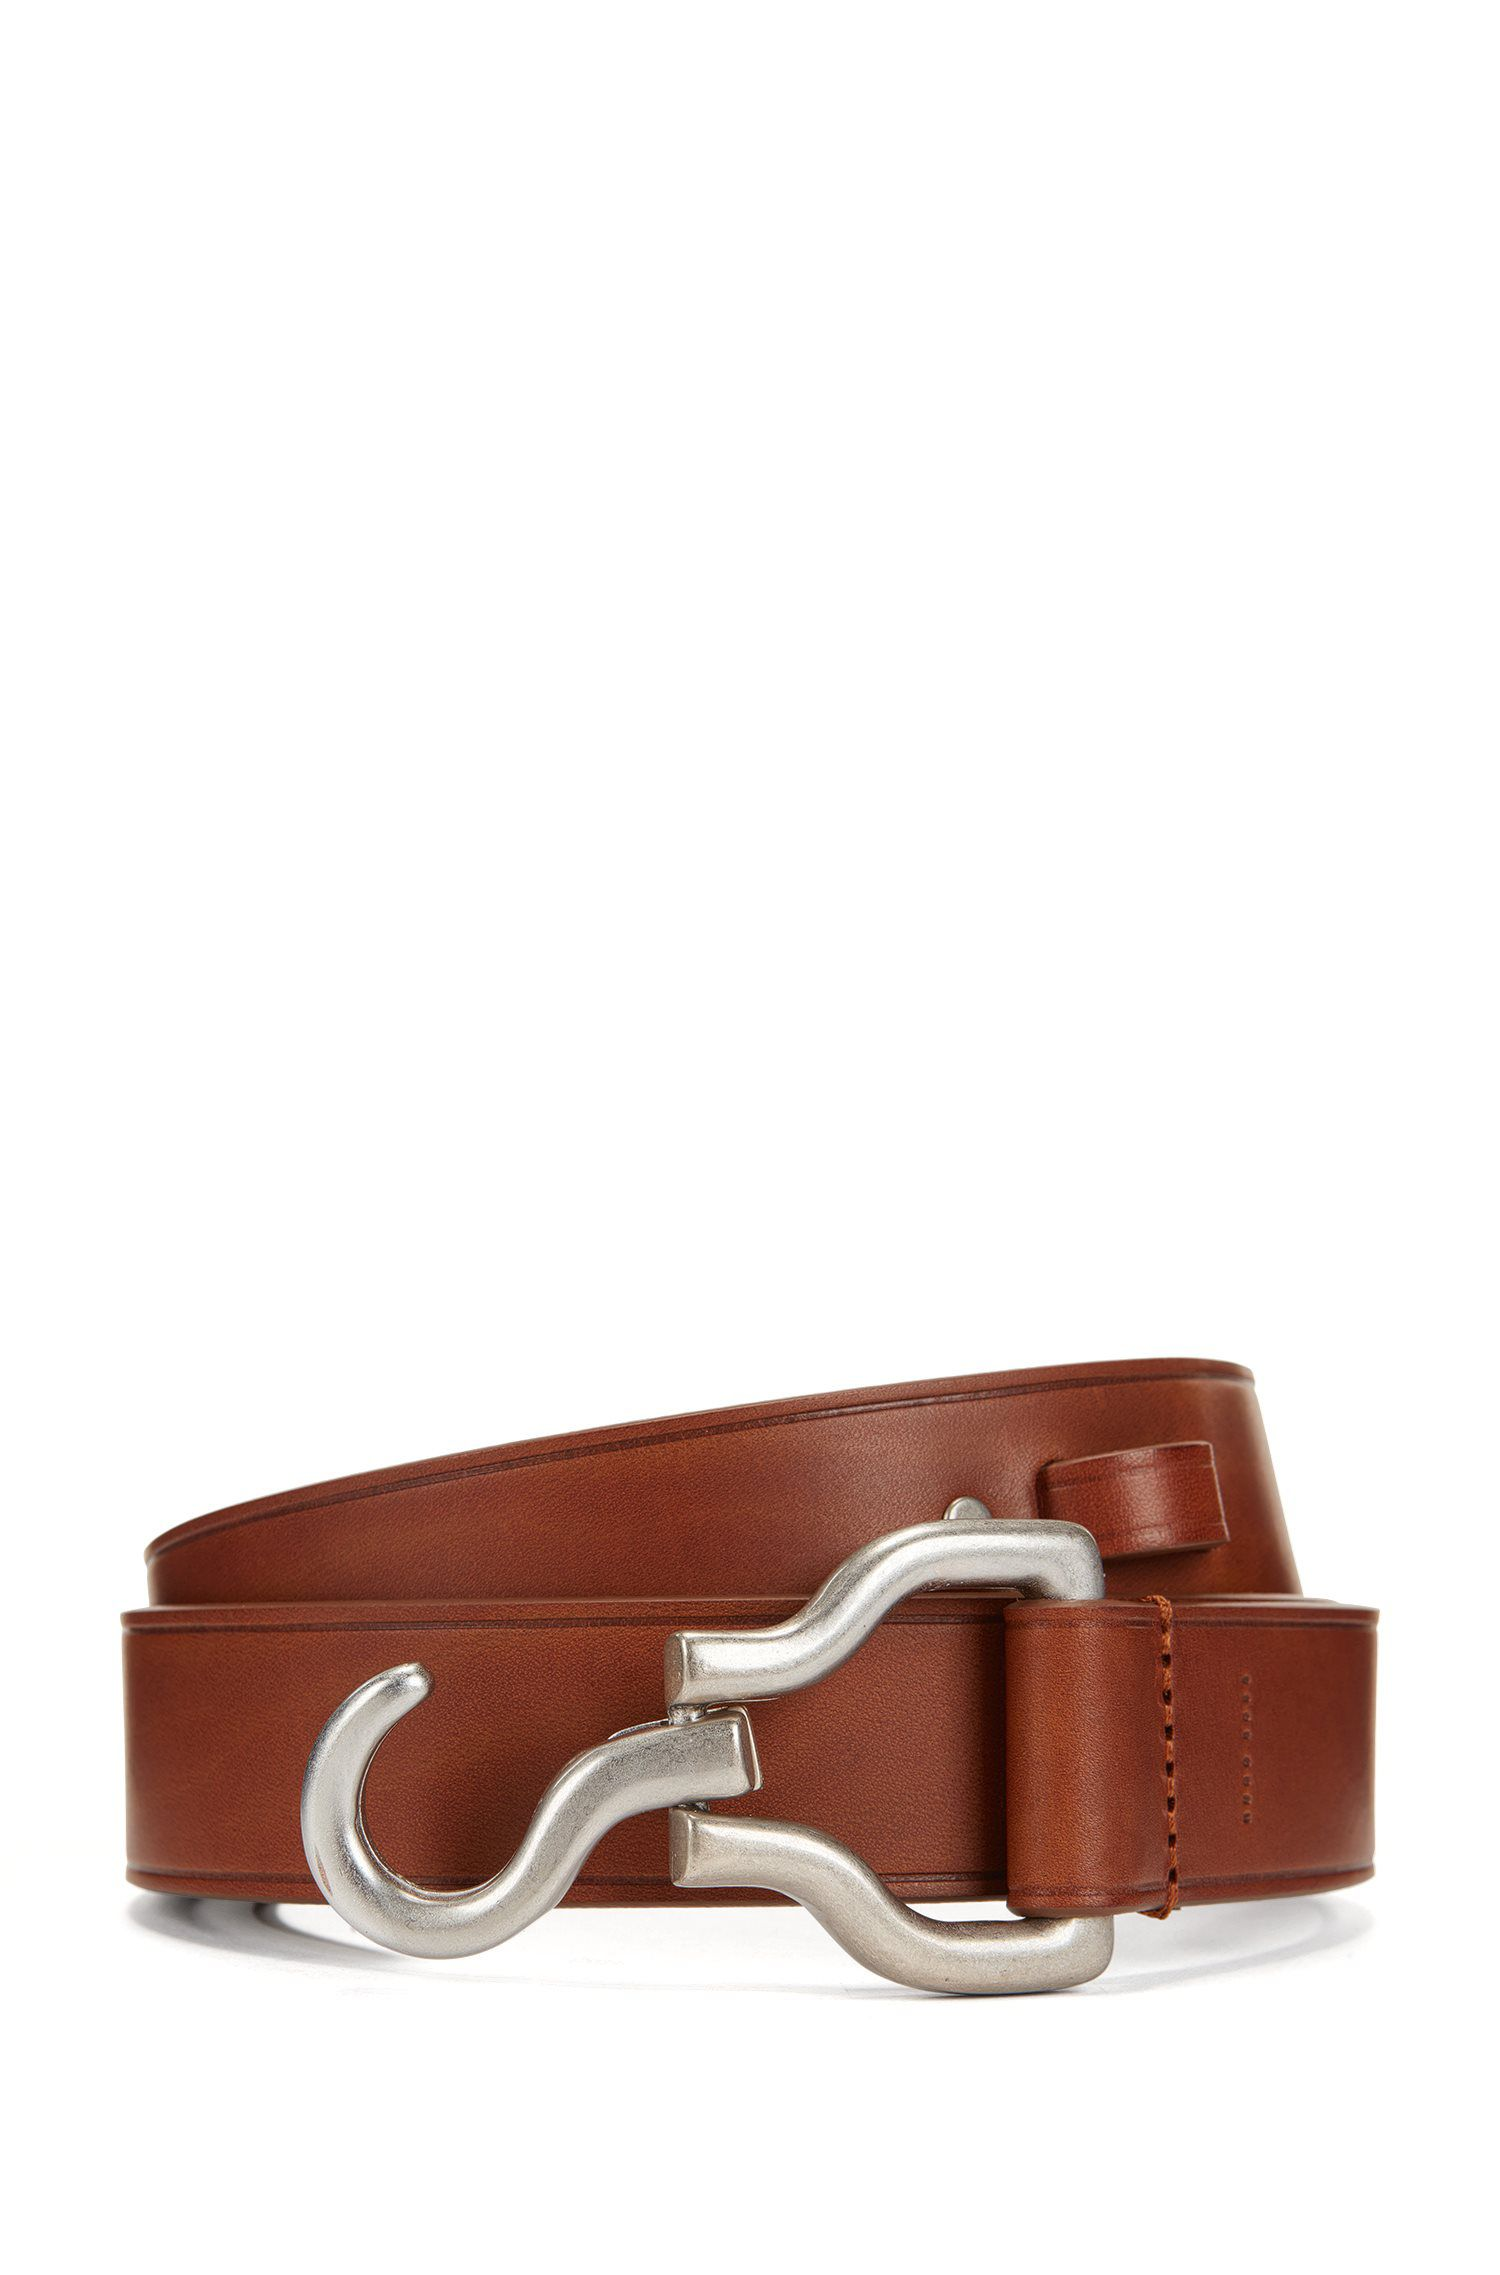 Hook-closure belt in smooth Italian leather